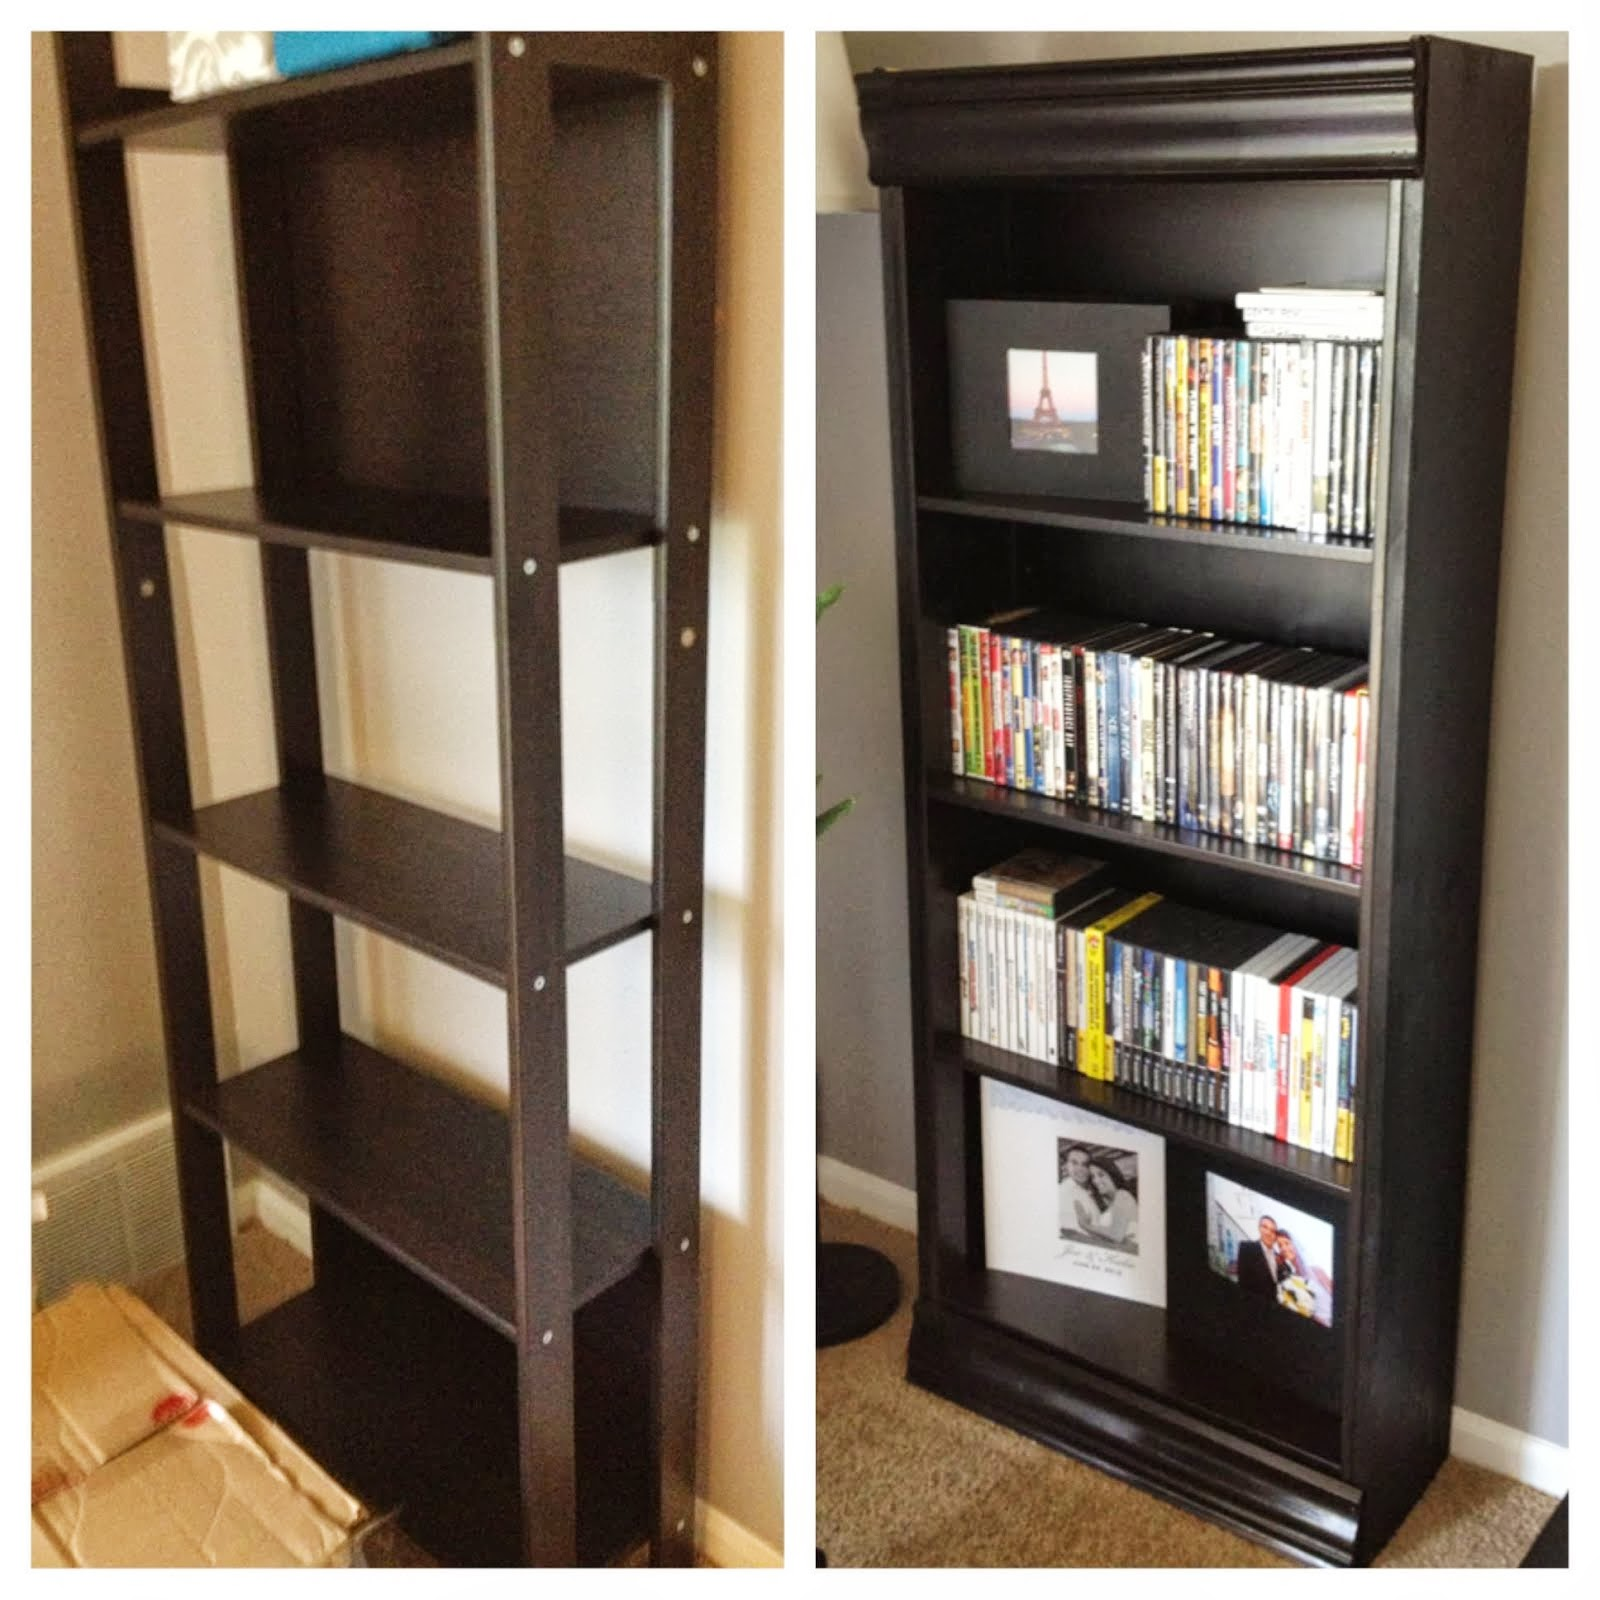 Laiva Bookcase Turned Fancy IKEA Hackers